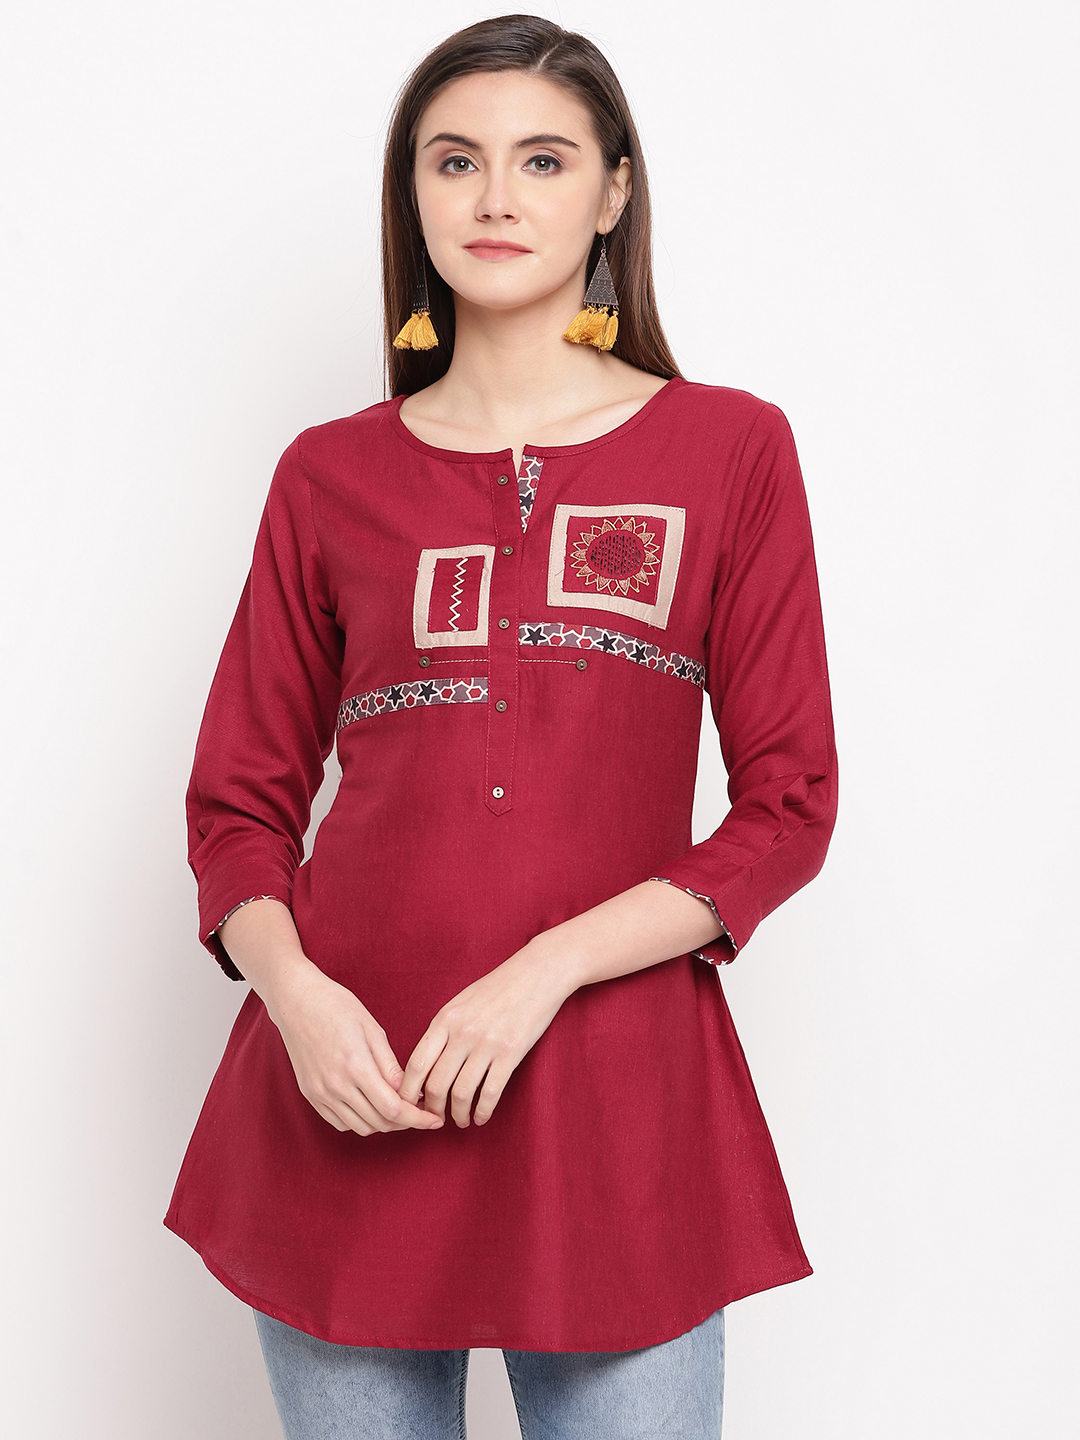 Designer Rayon Flex With Embroidery Work Fancy Readymade Short Kurti Tops Collection At Wholesale Rate